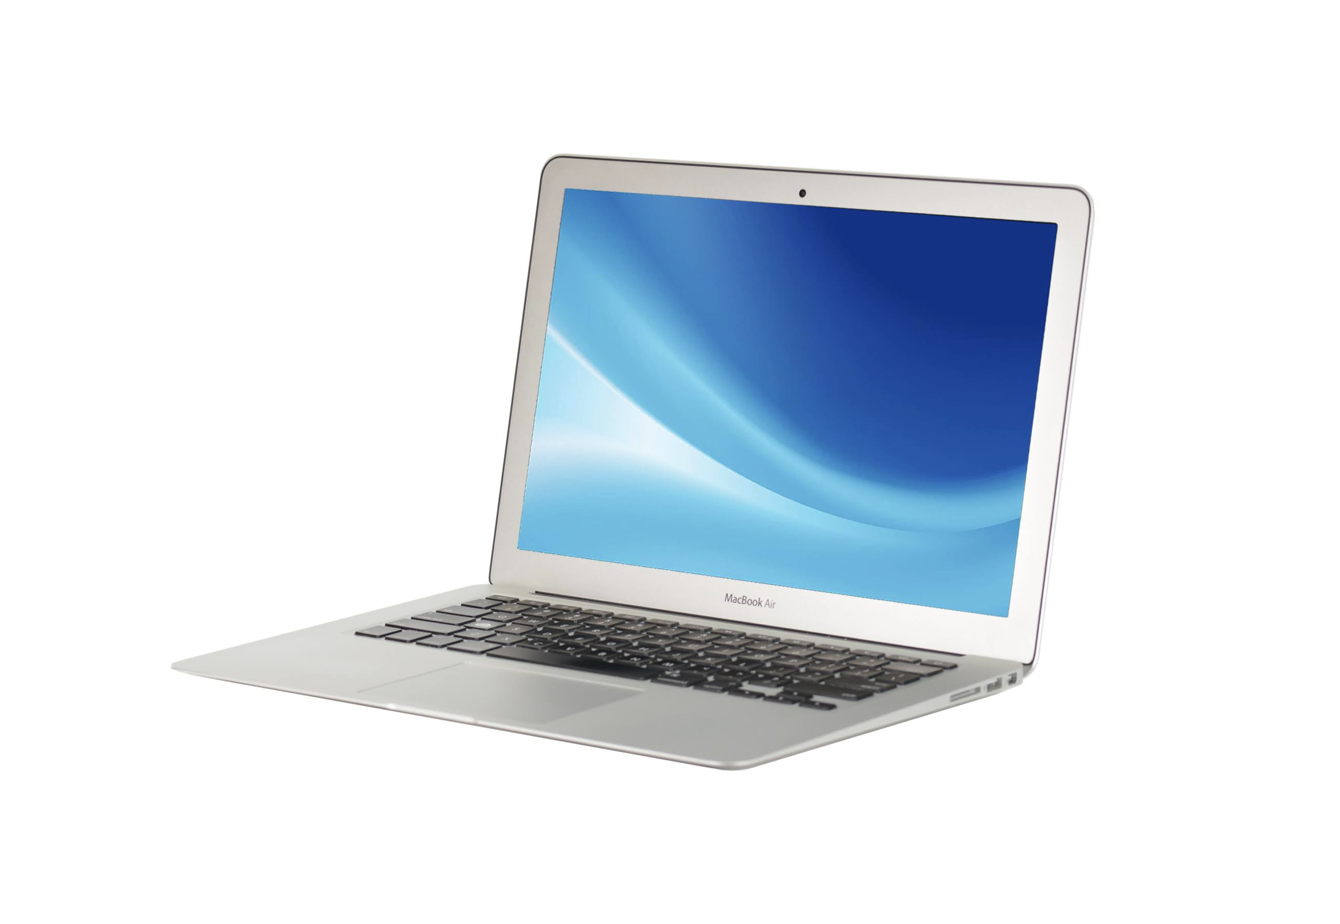 Reconditioned, Open Box - MacBook Air 13in 1.3GHz i5 4GB/256GB (Discontinued Model) at Small Dog Electronics